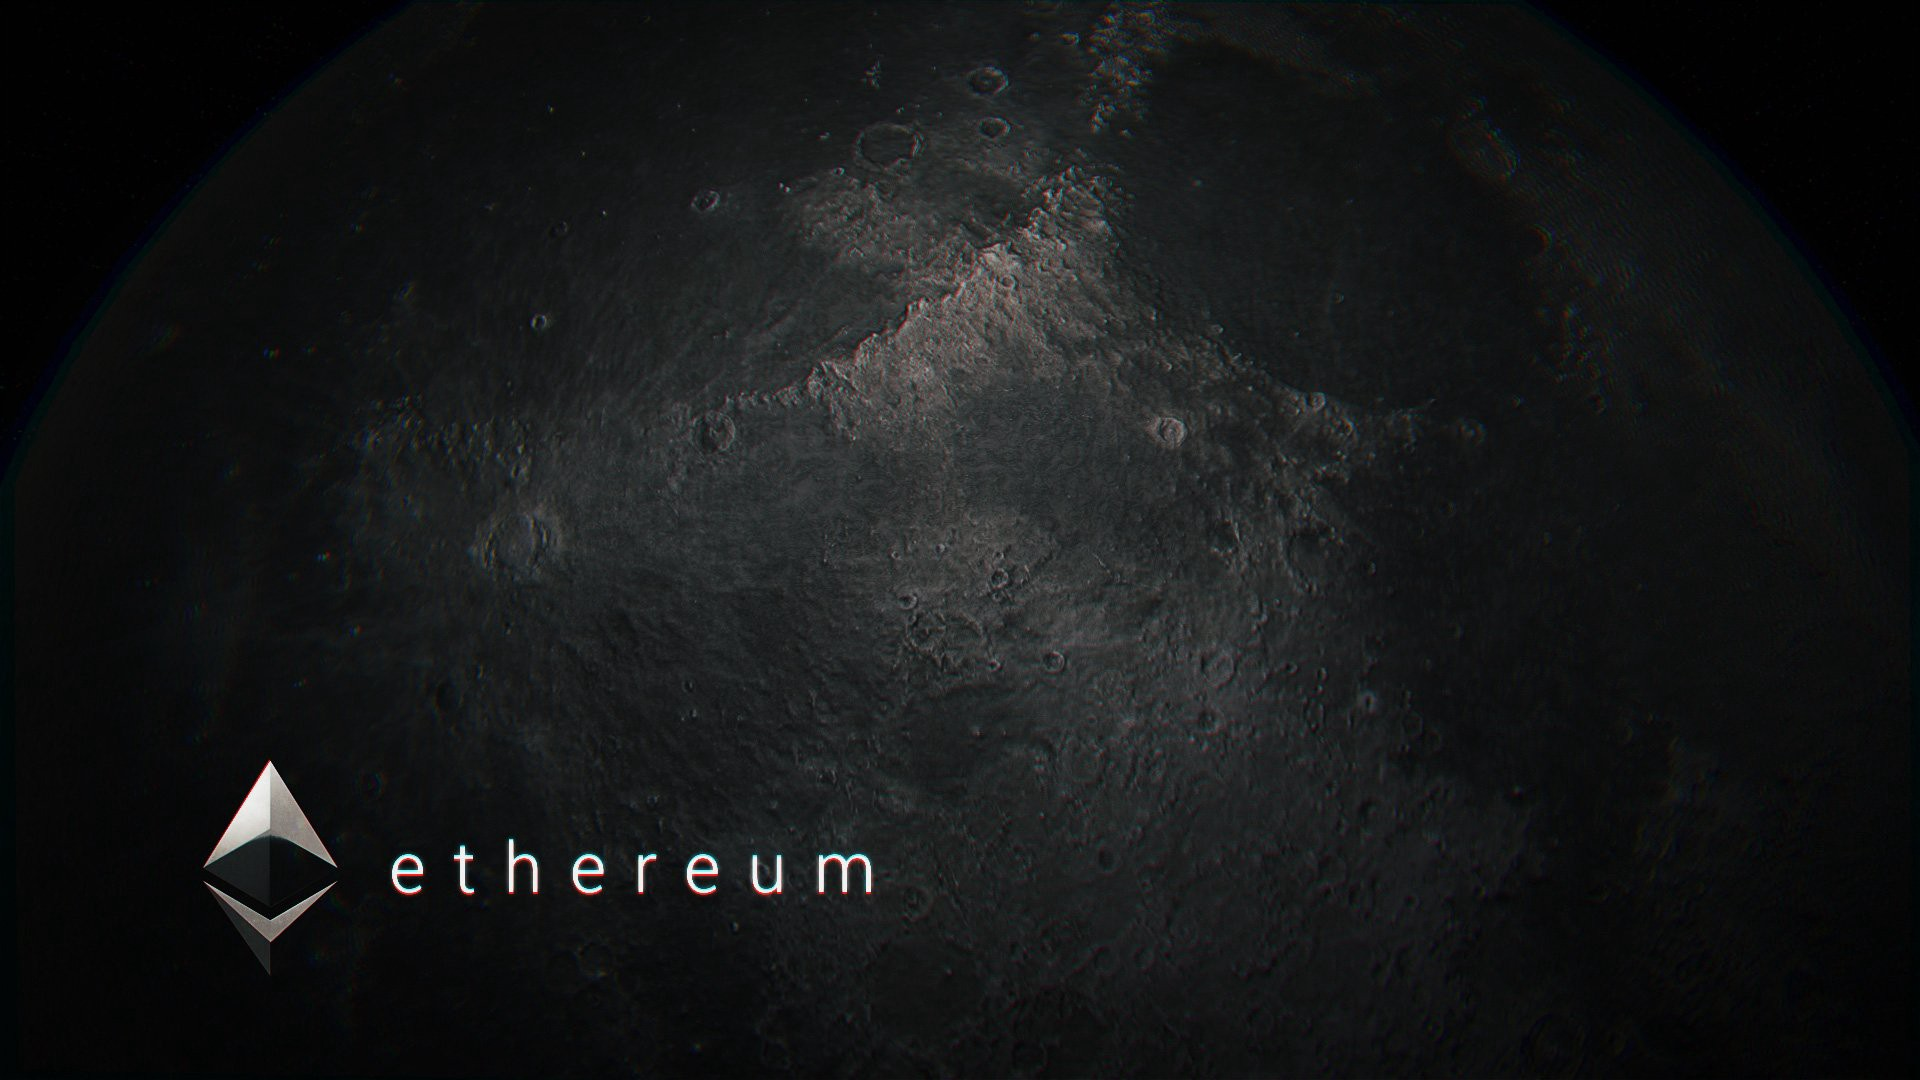 What ethereum means to me